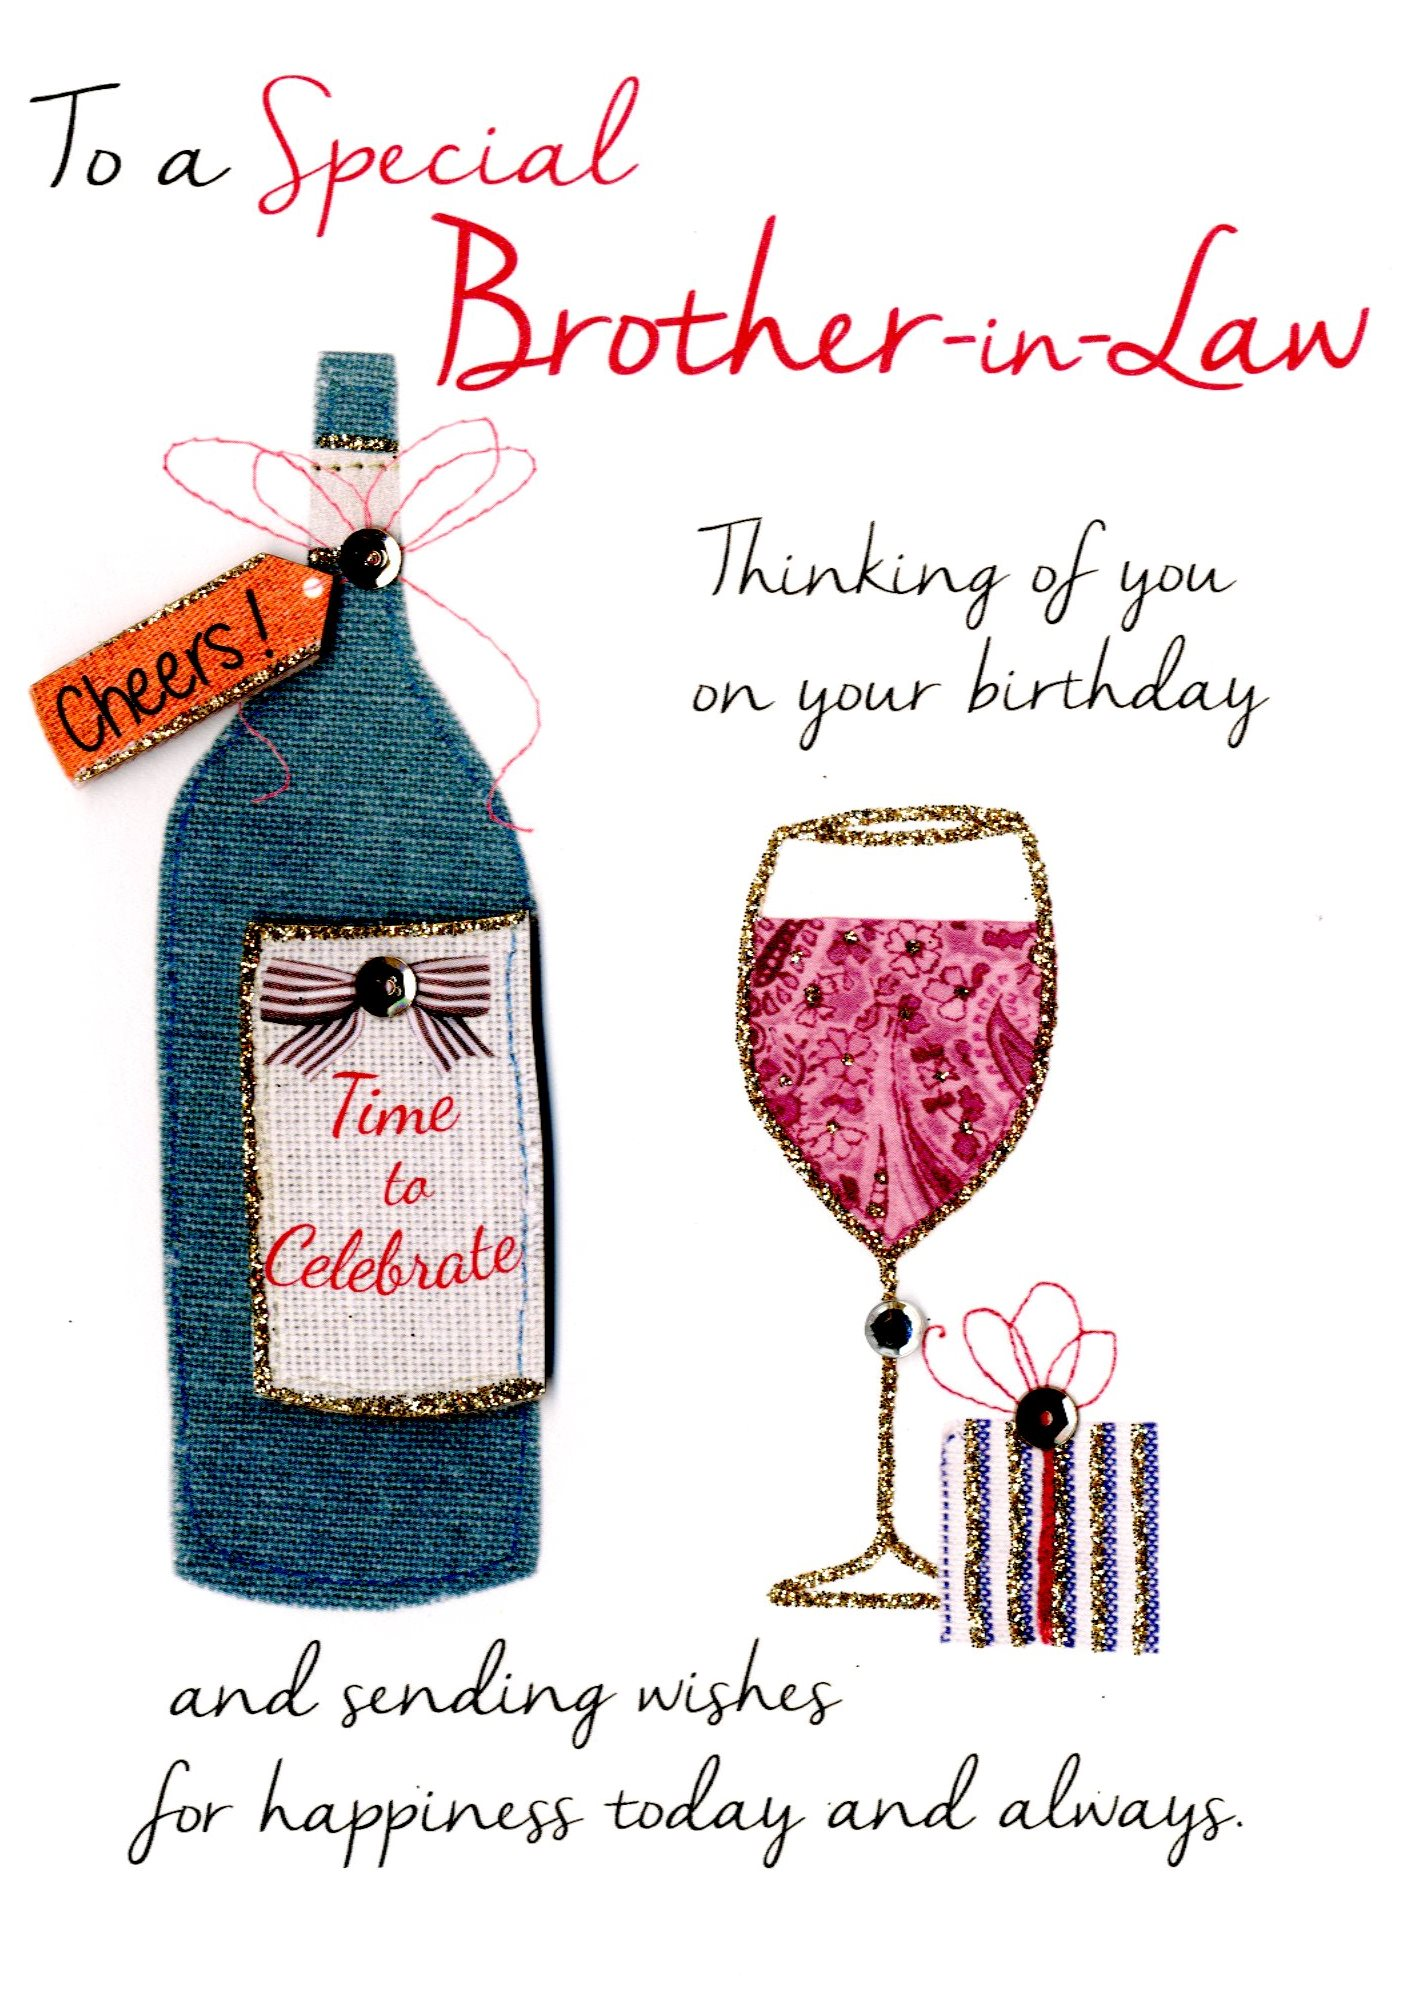 brother in law birthday wishes card ; JT074